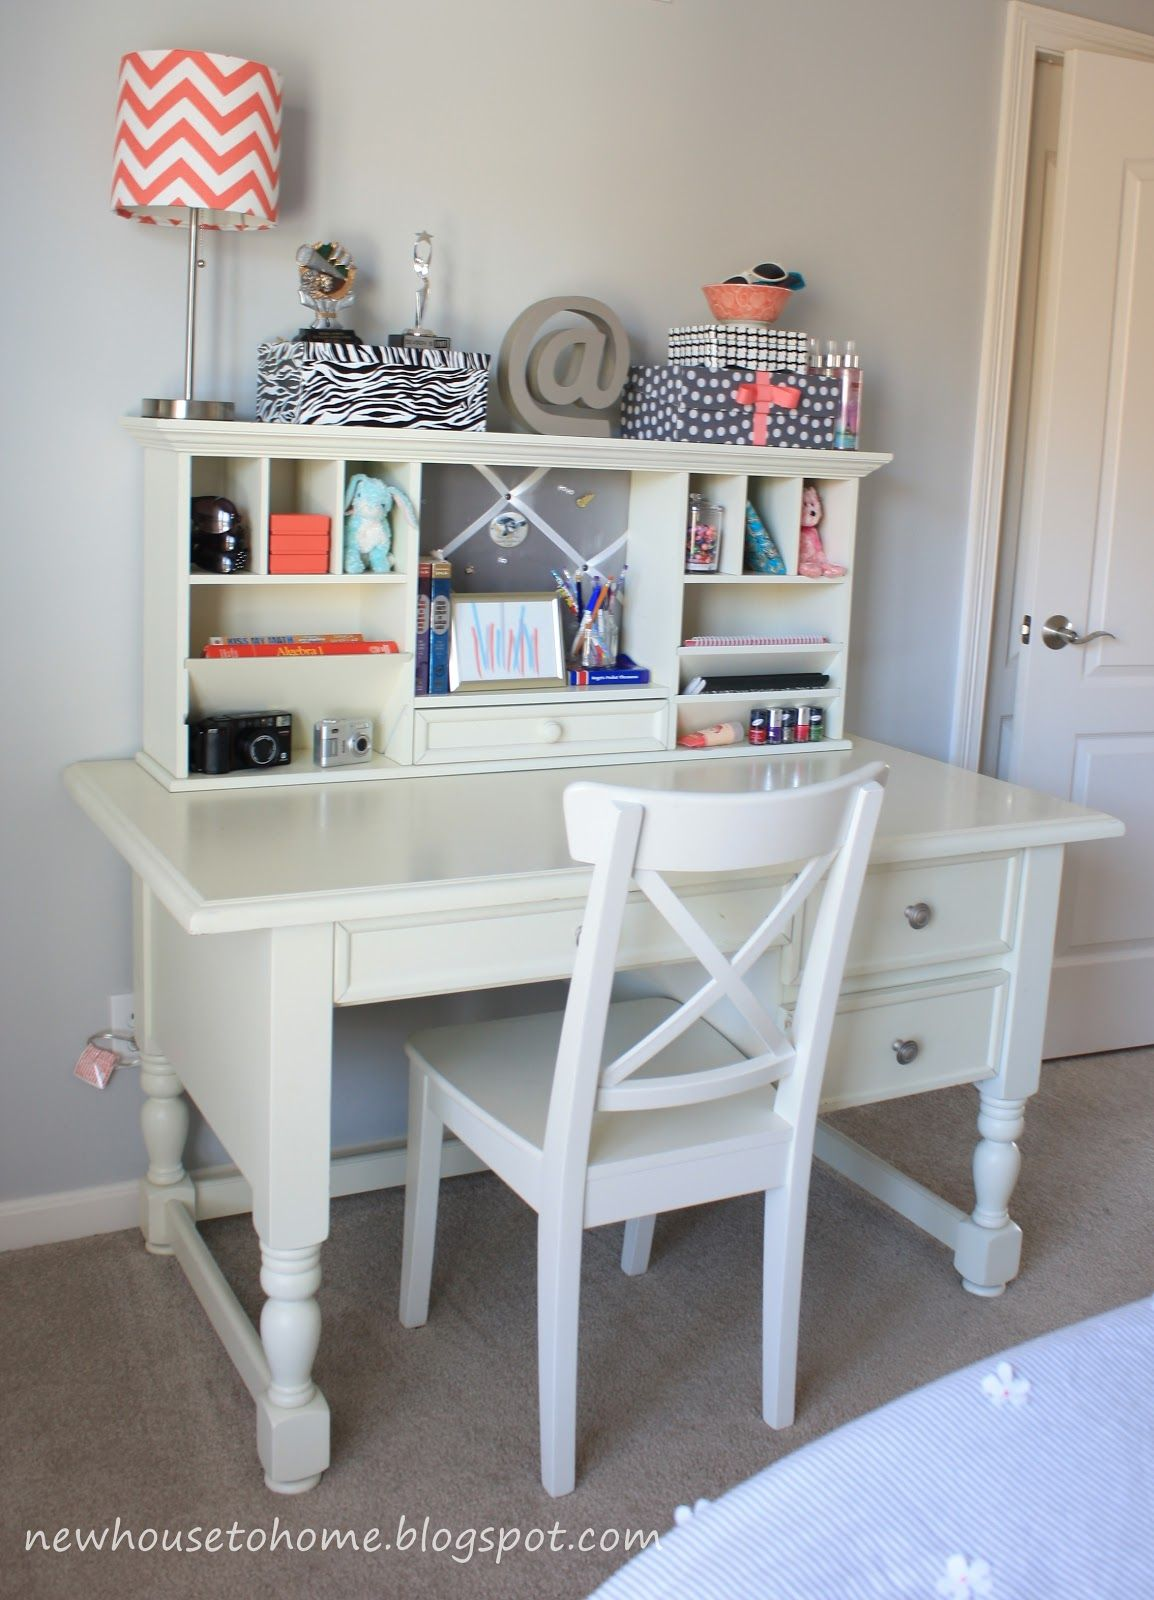 Cute Chairs For Teenage Bedrooms Midcentury Modern Desk Girls Room Every Girl Needs A Place To